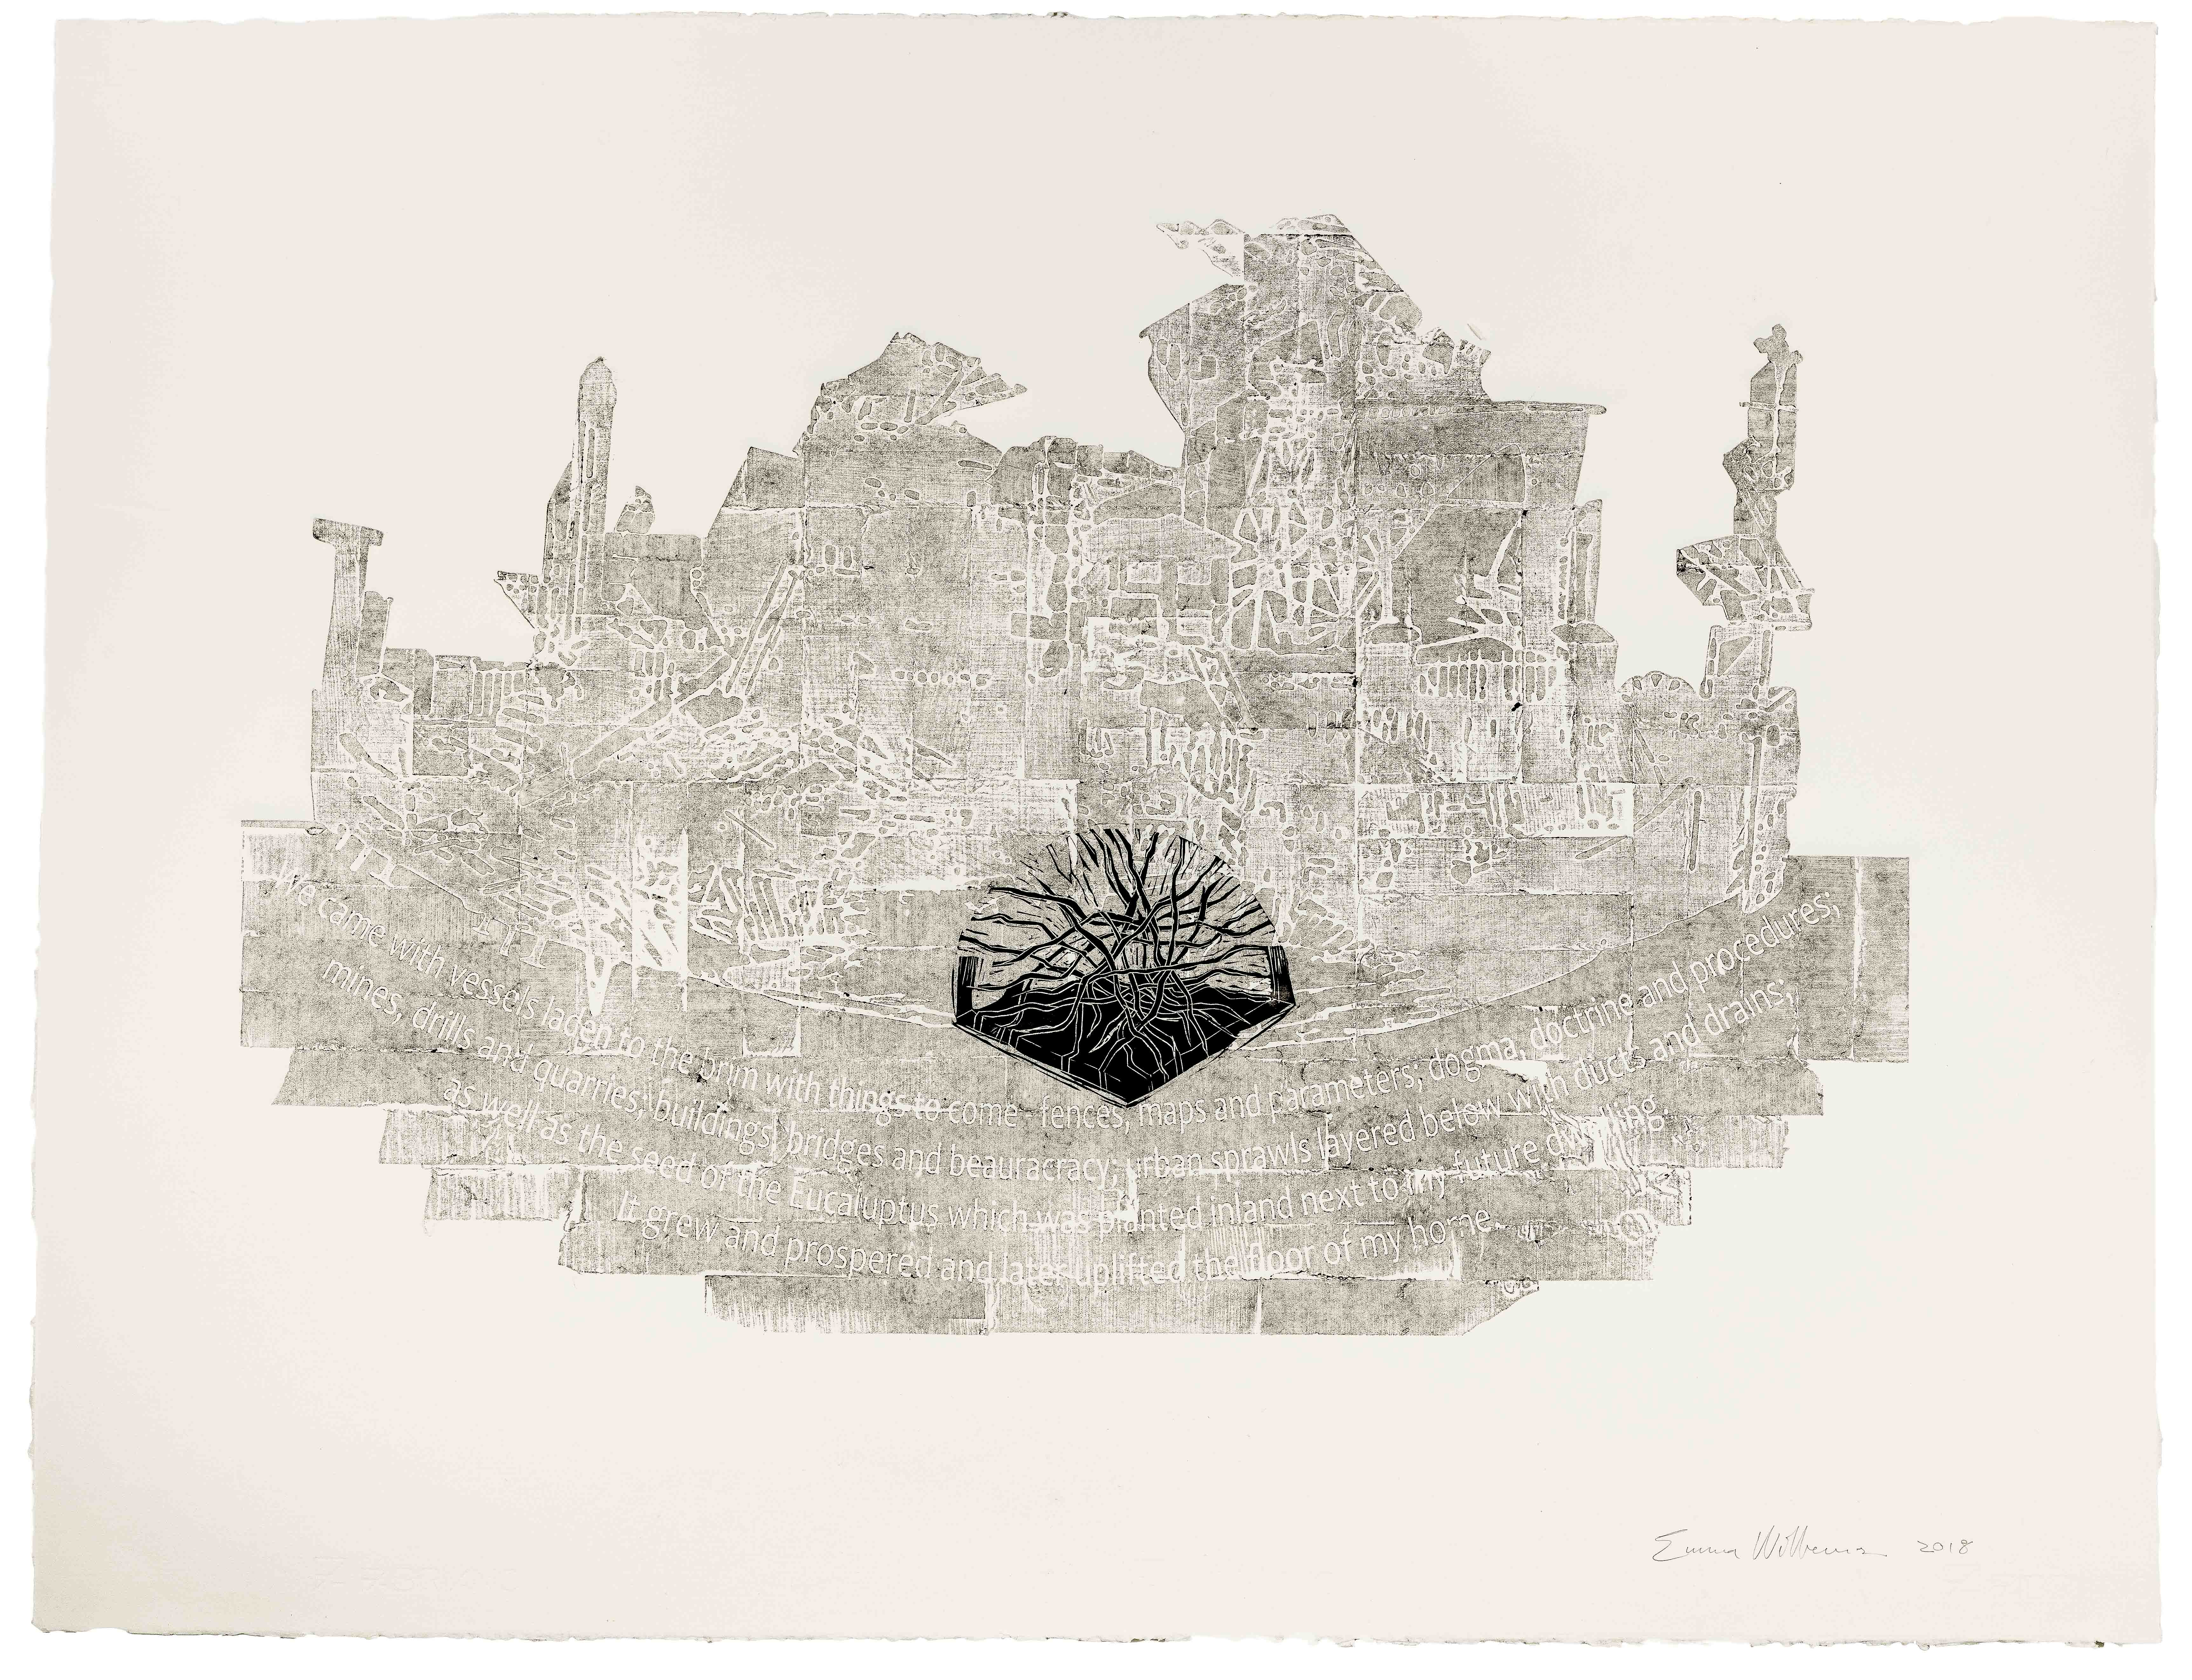 Fences, maps and parameters _ 1030x820mm _ Collagraph and linocut on Fabriano Rosapina